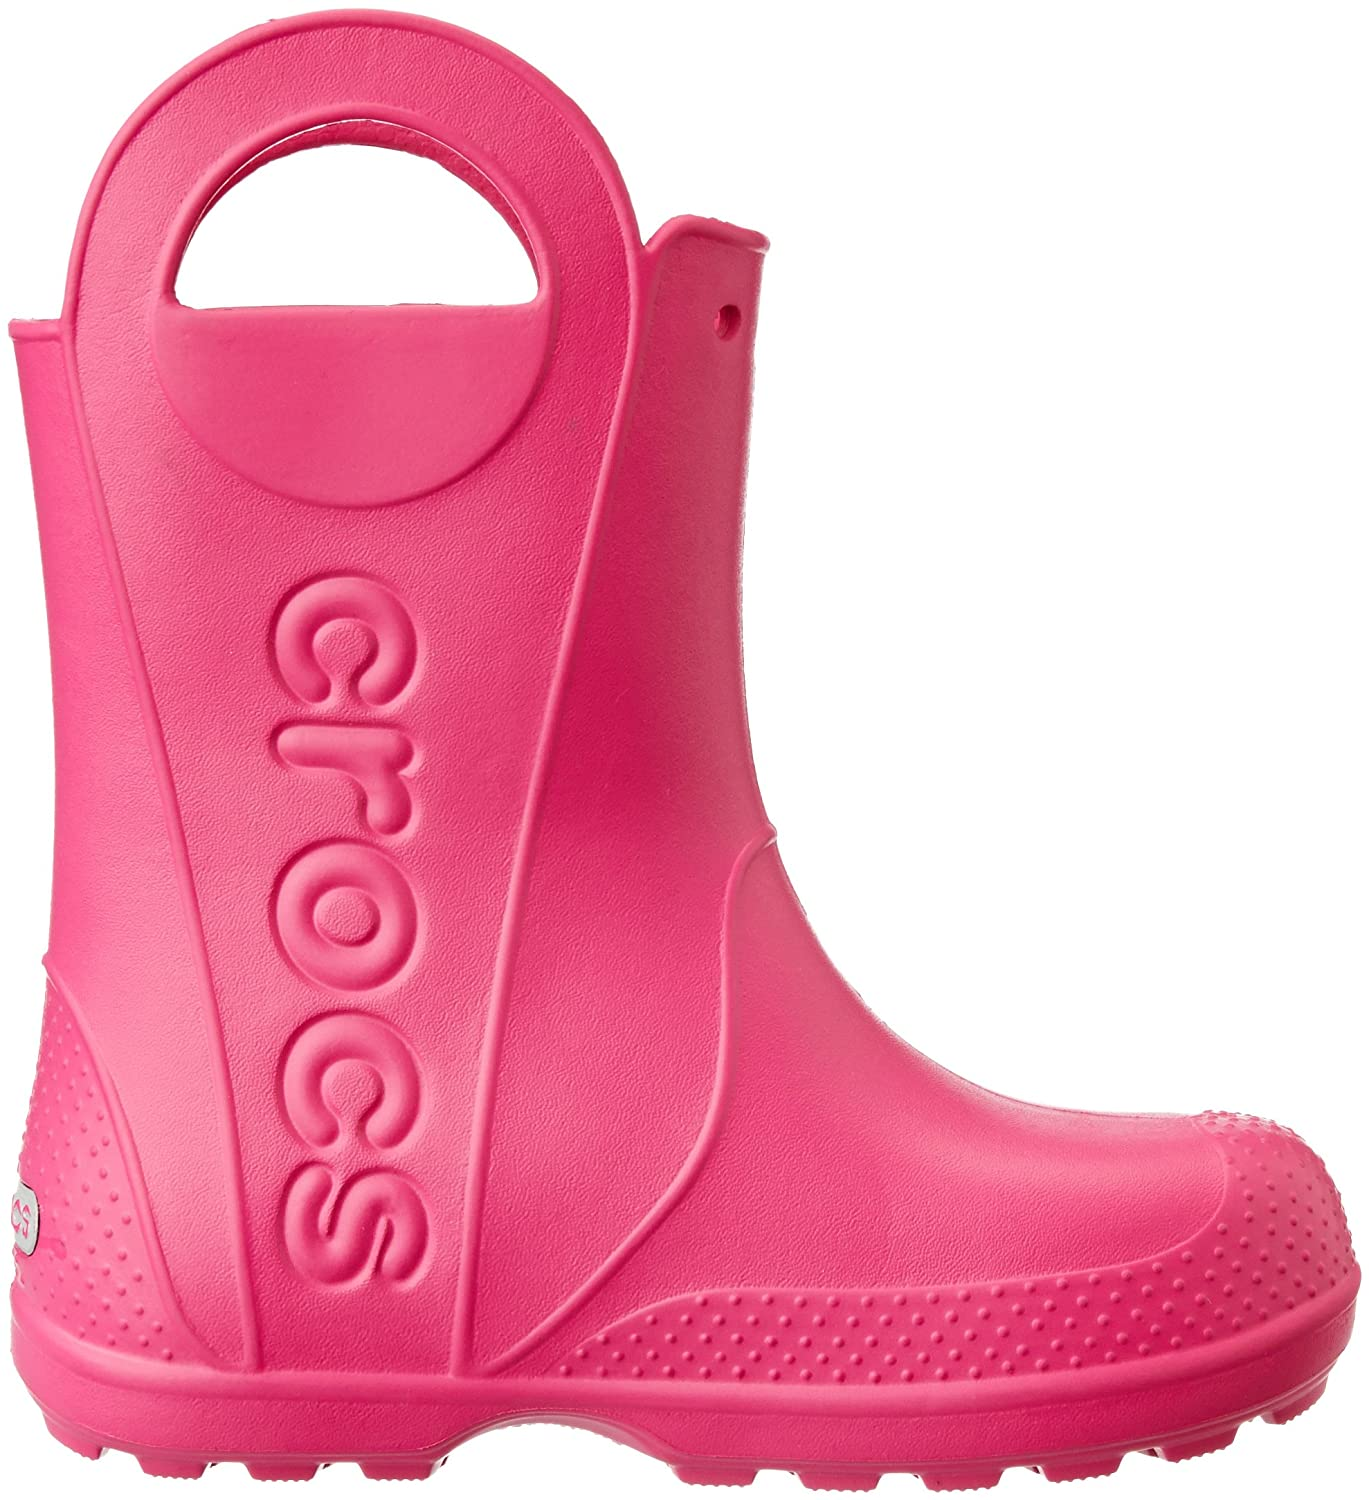 Lightweight and Waterproof Boys Girls Crocs Kids Handle It Rain Boot Easy On for Toddlers